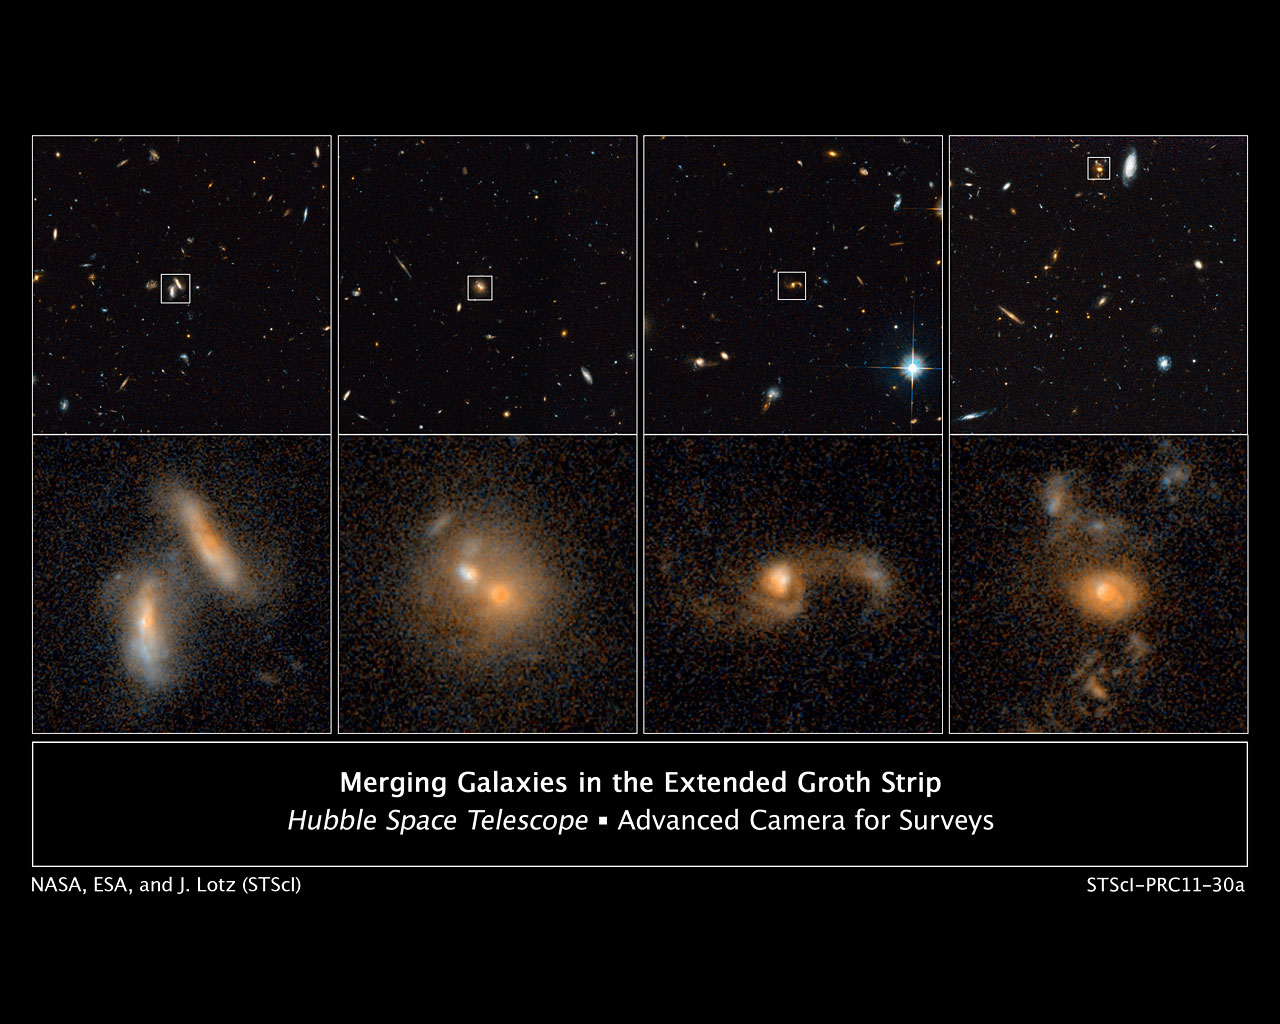 Merging galaxies in the Extended Groth Strip